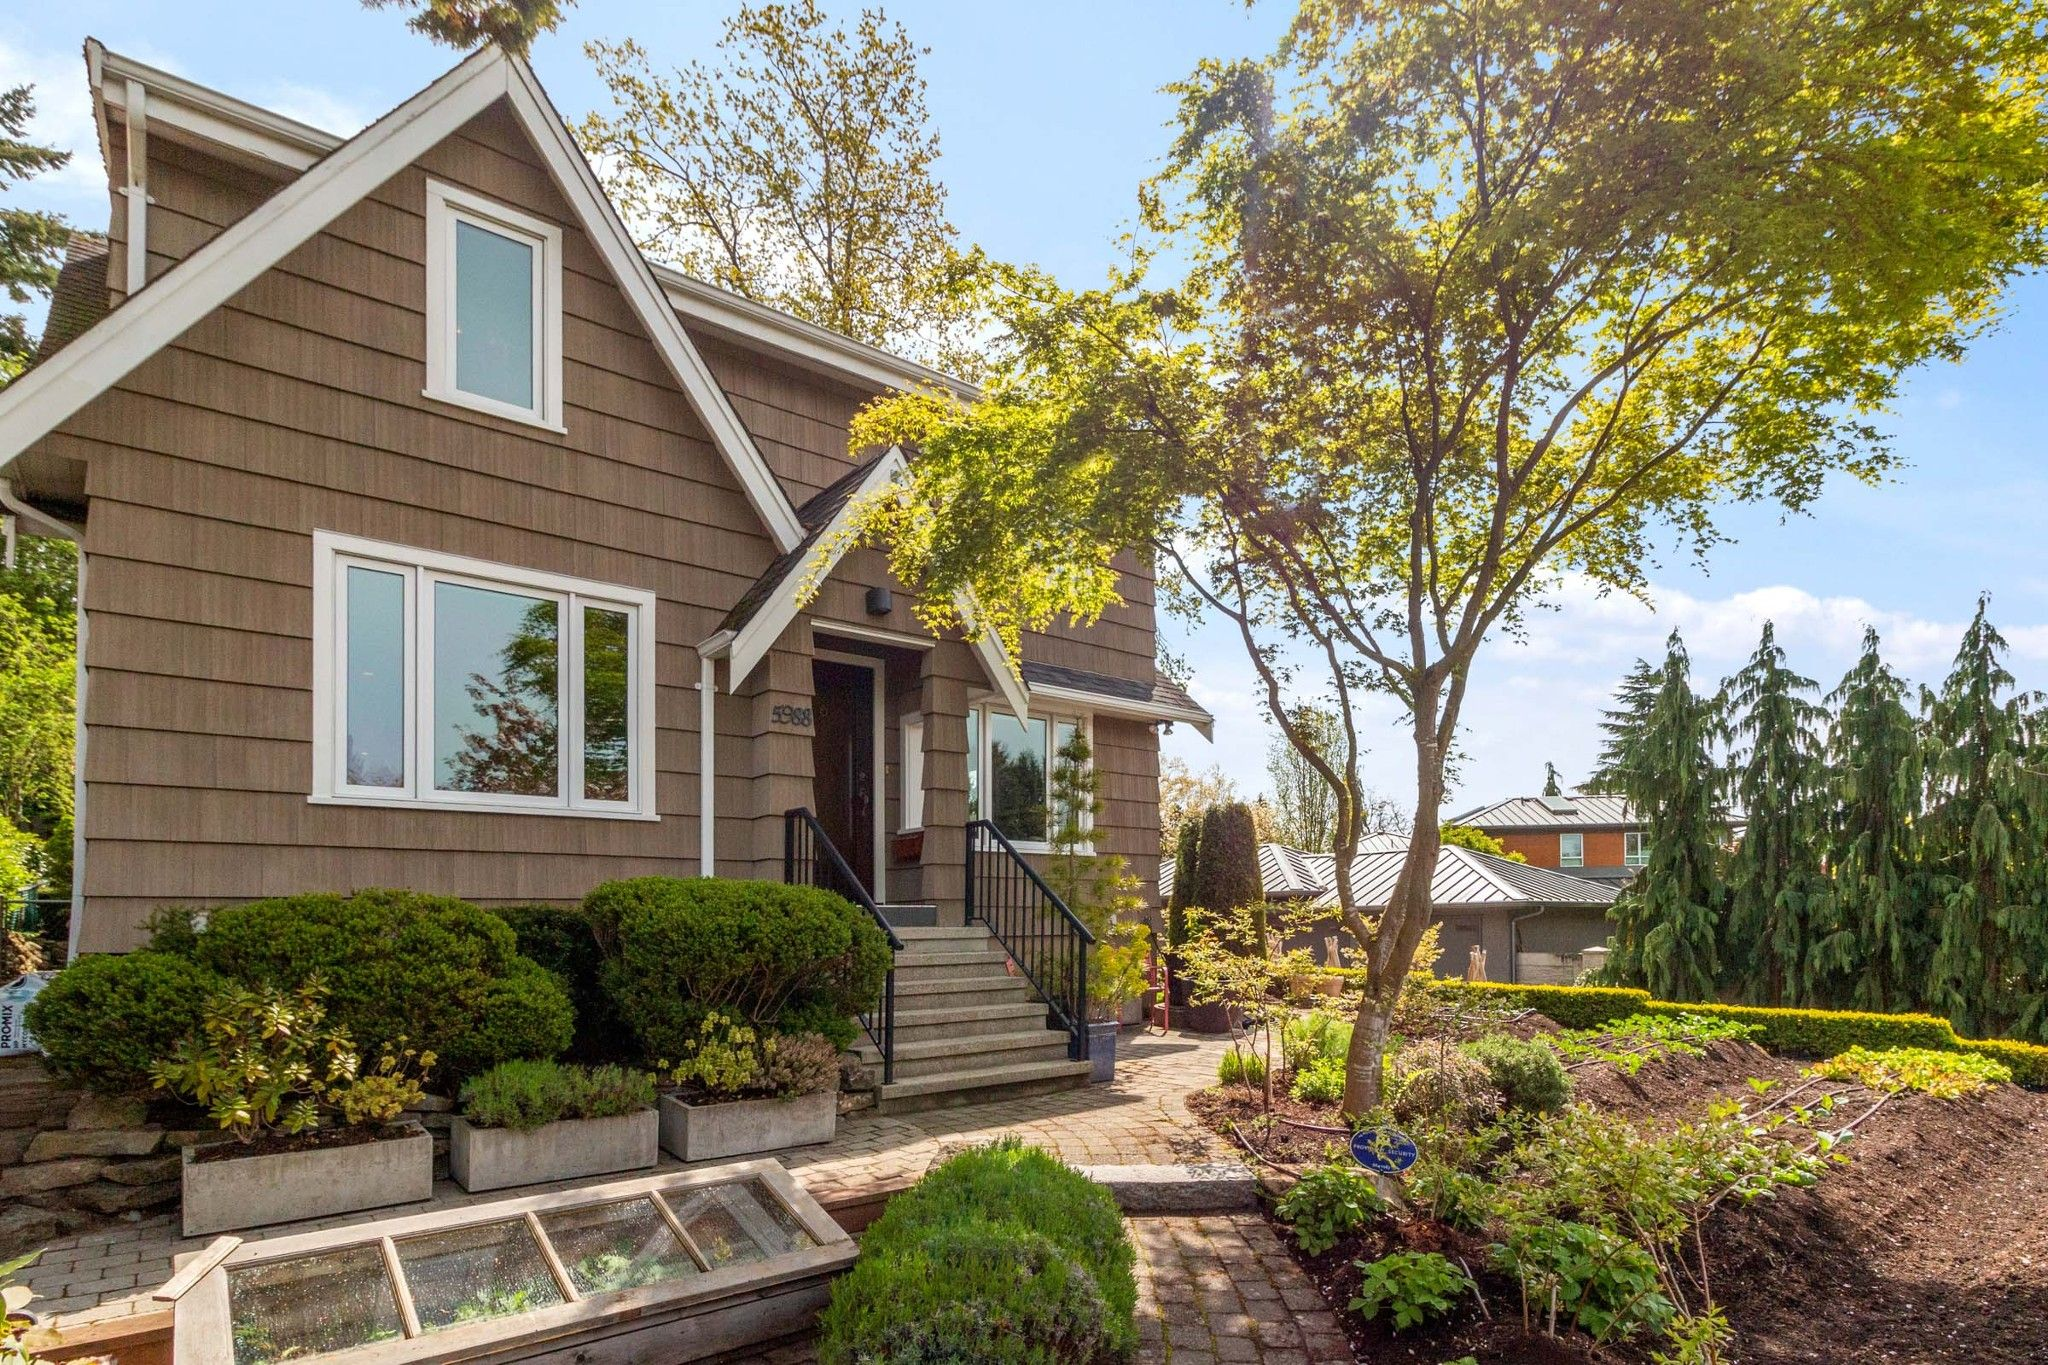 Main Photo: 5988 DUNBAR Street in Vancouver: Southlands House for sale (Vancouver West)  : MLS®# R2574369